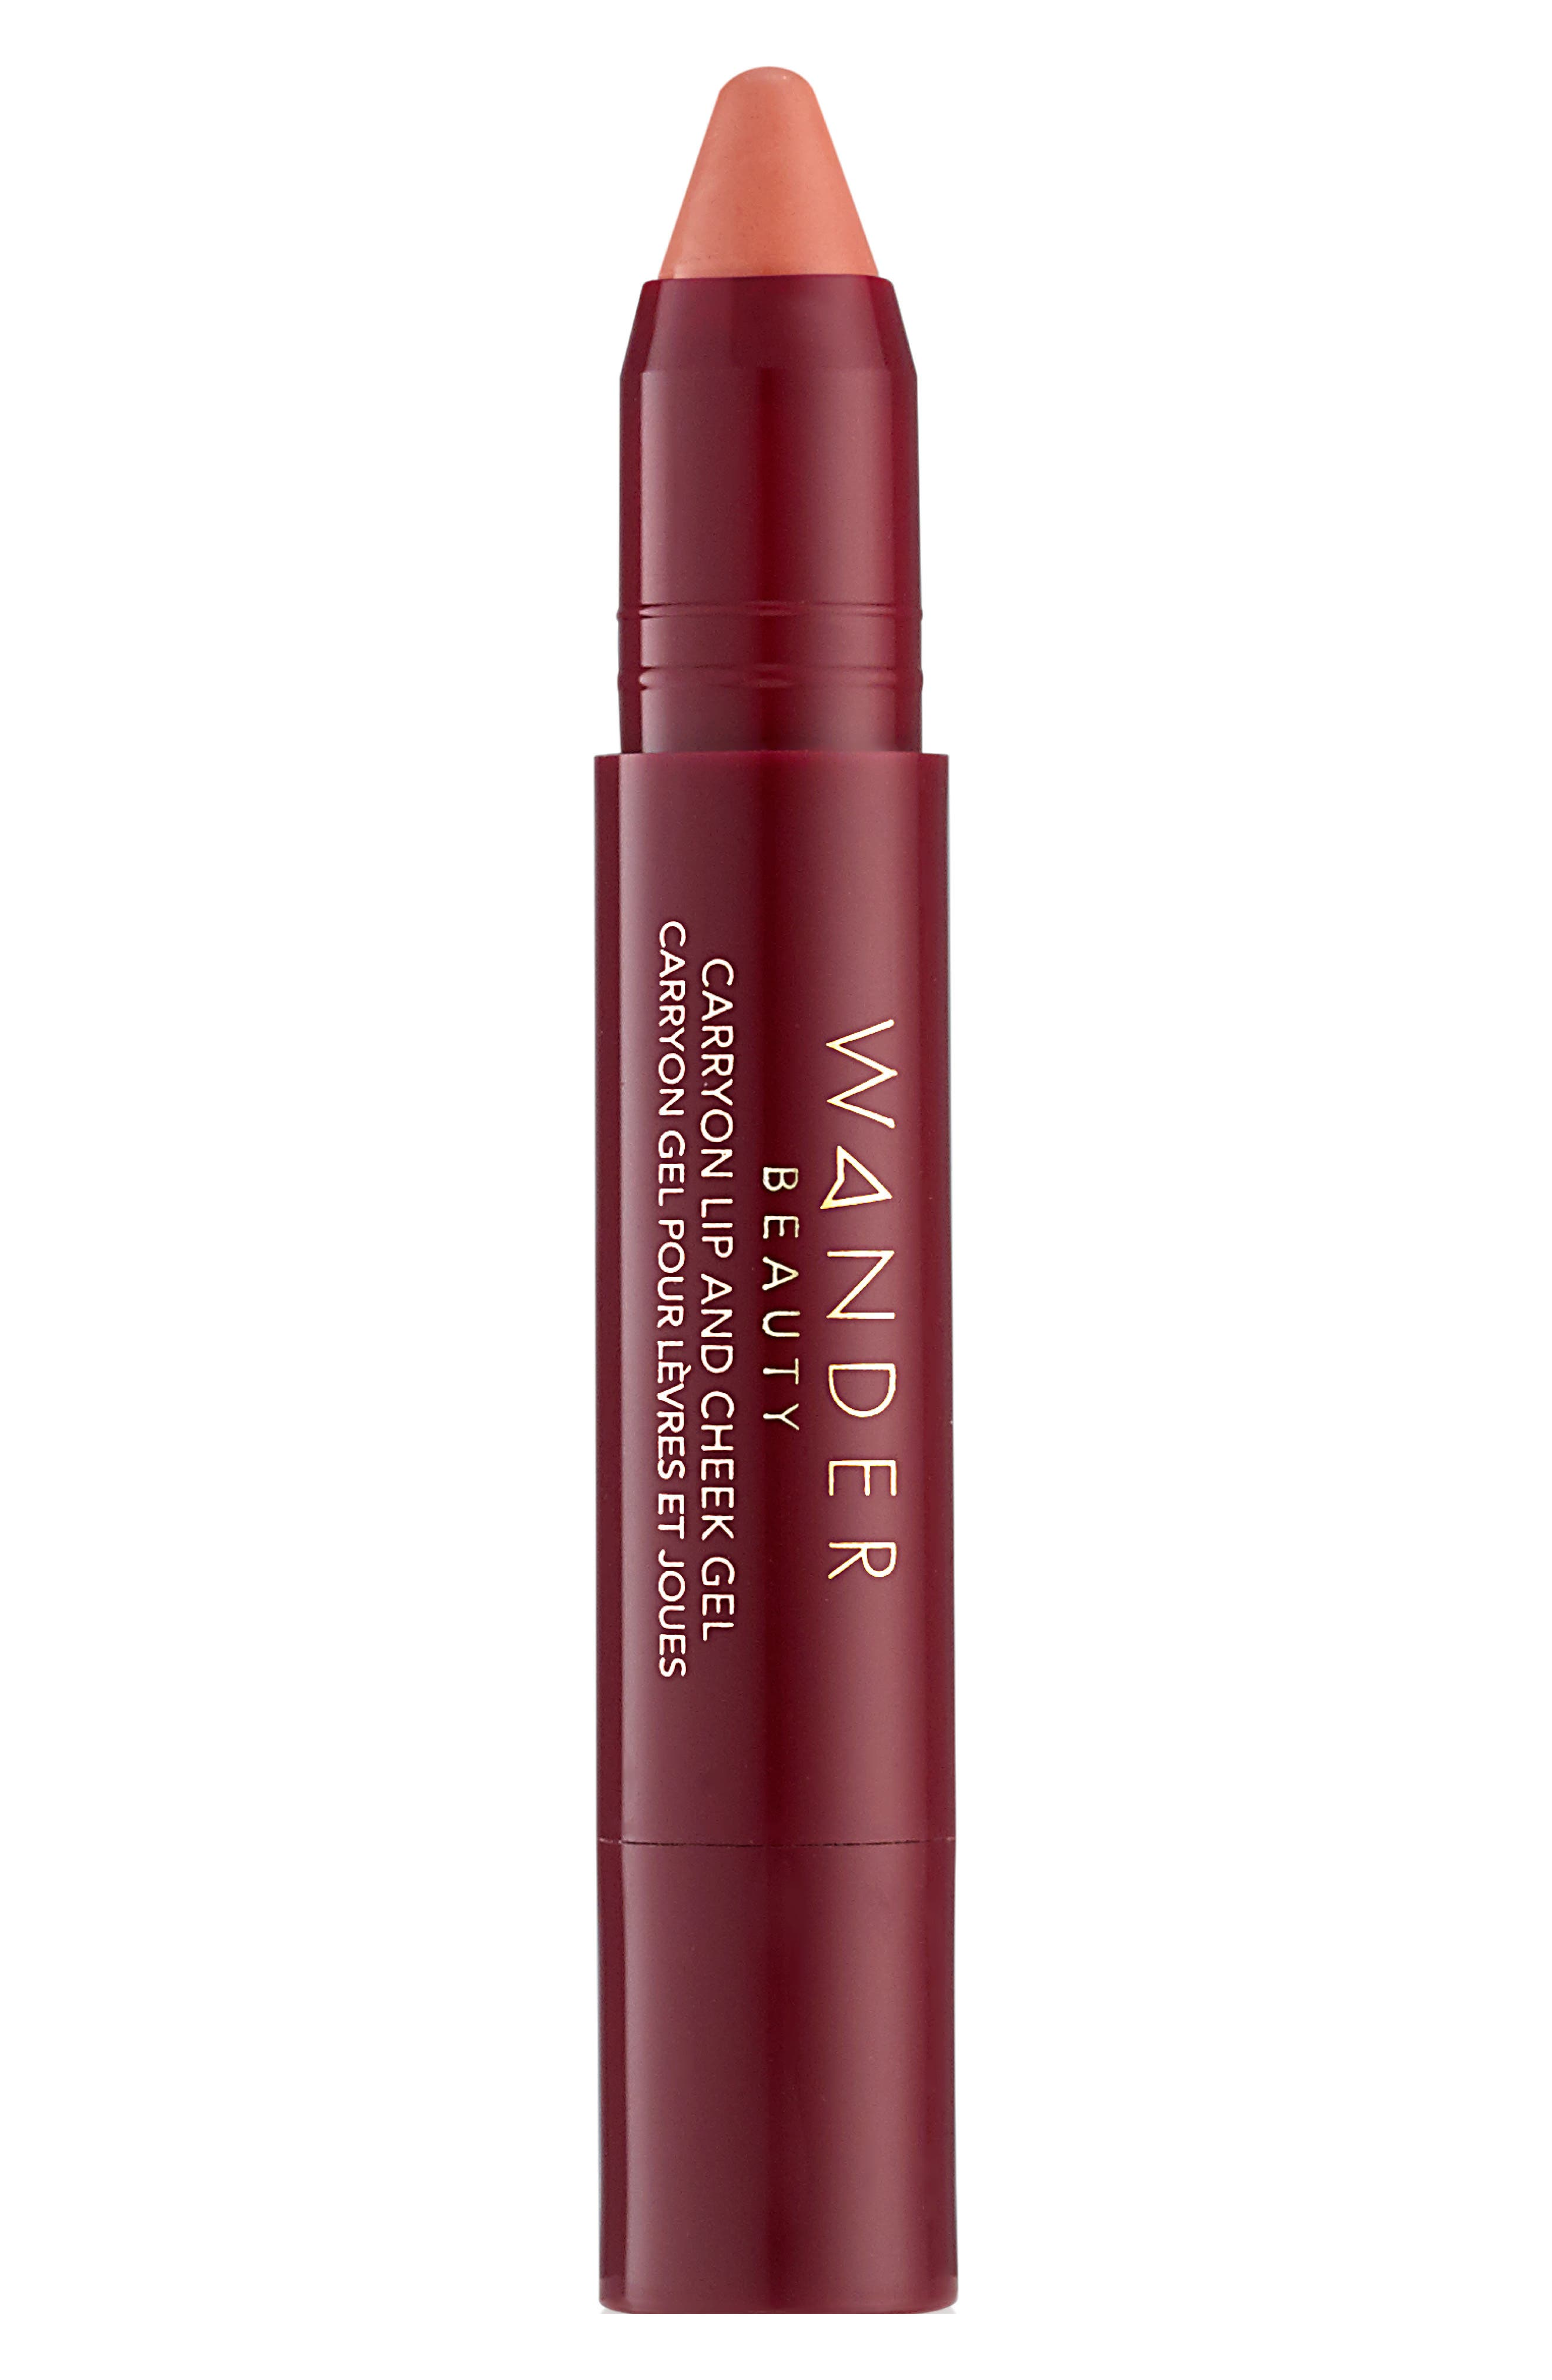 Carryon Lip & Cheek Gel,                             Main thumbnail 1, color,                             MADISONESS